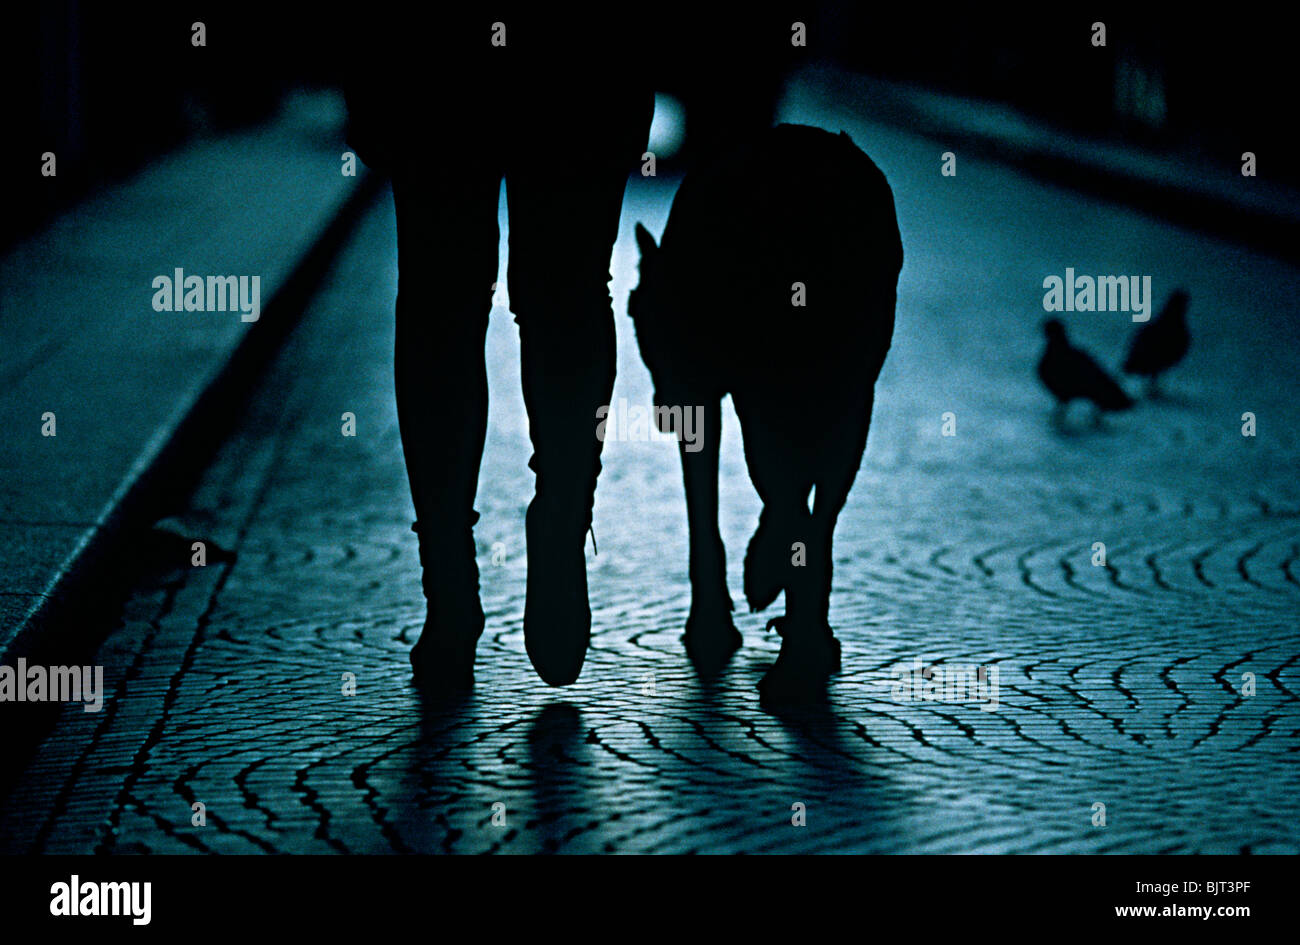 A person walking their dog - Stock Image